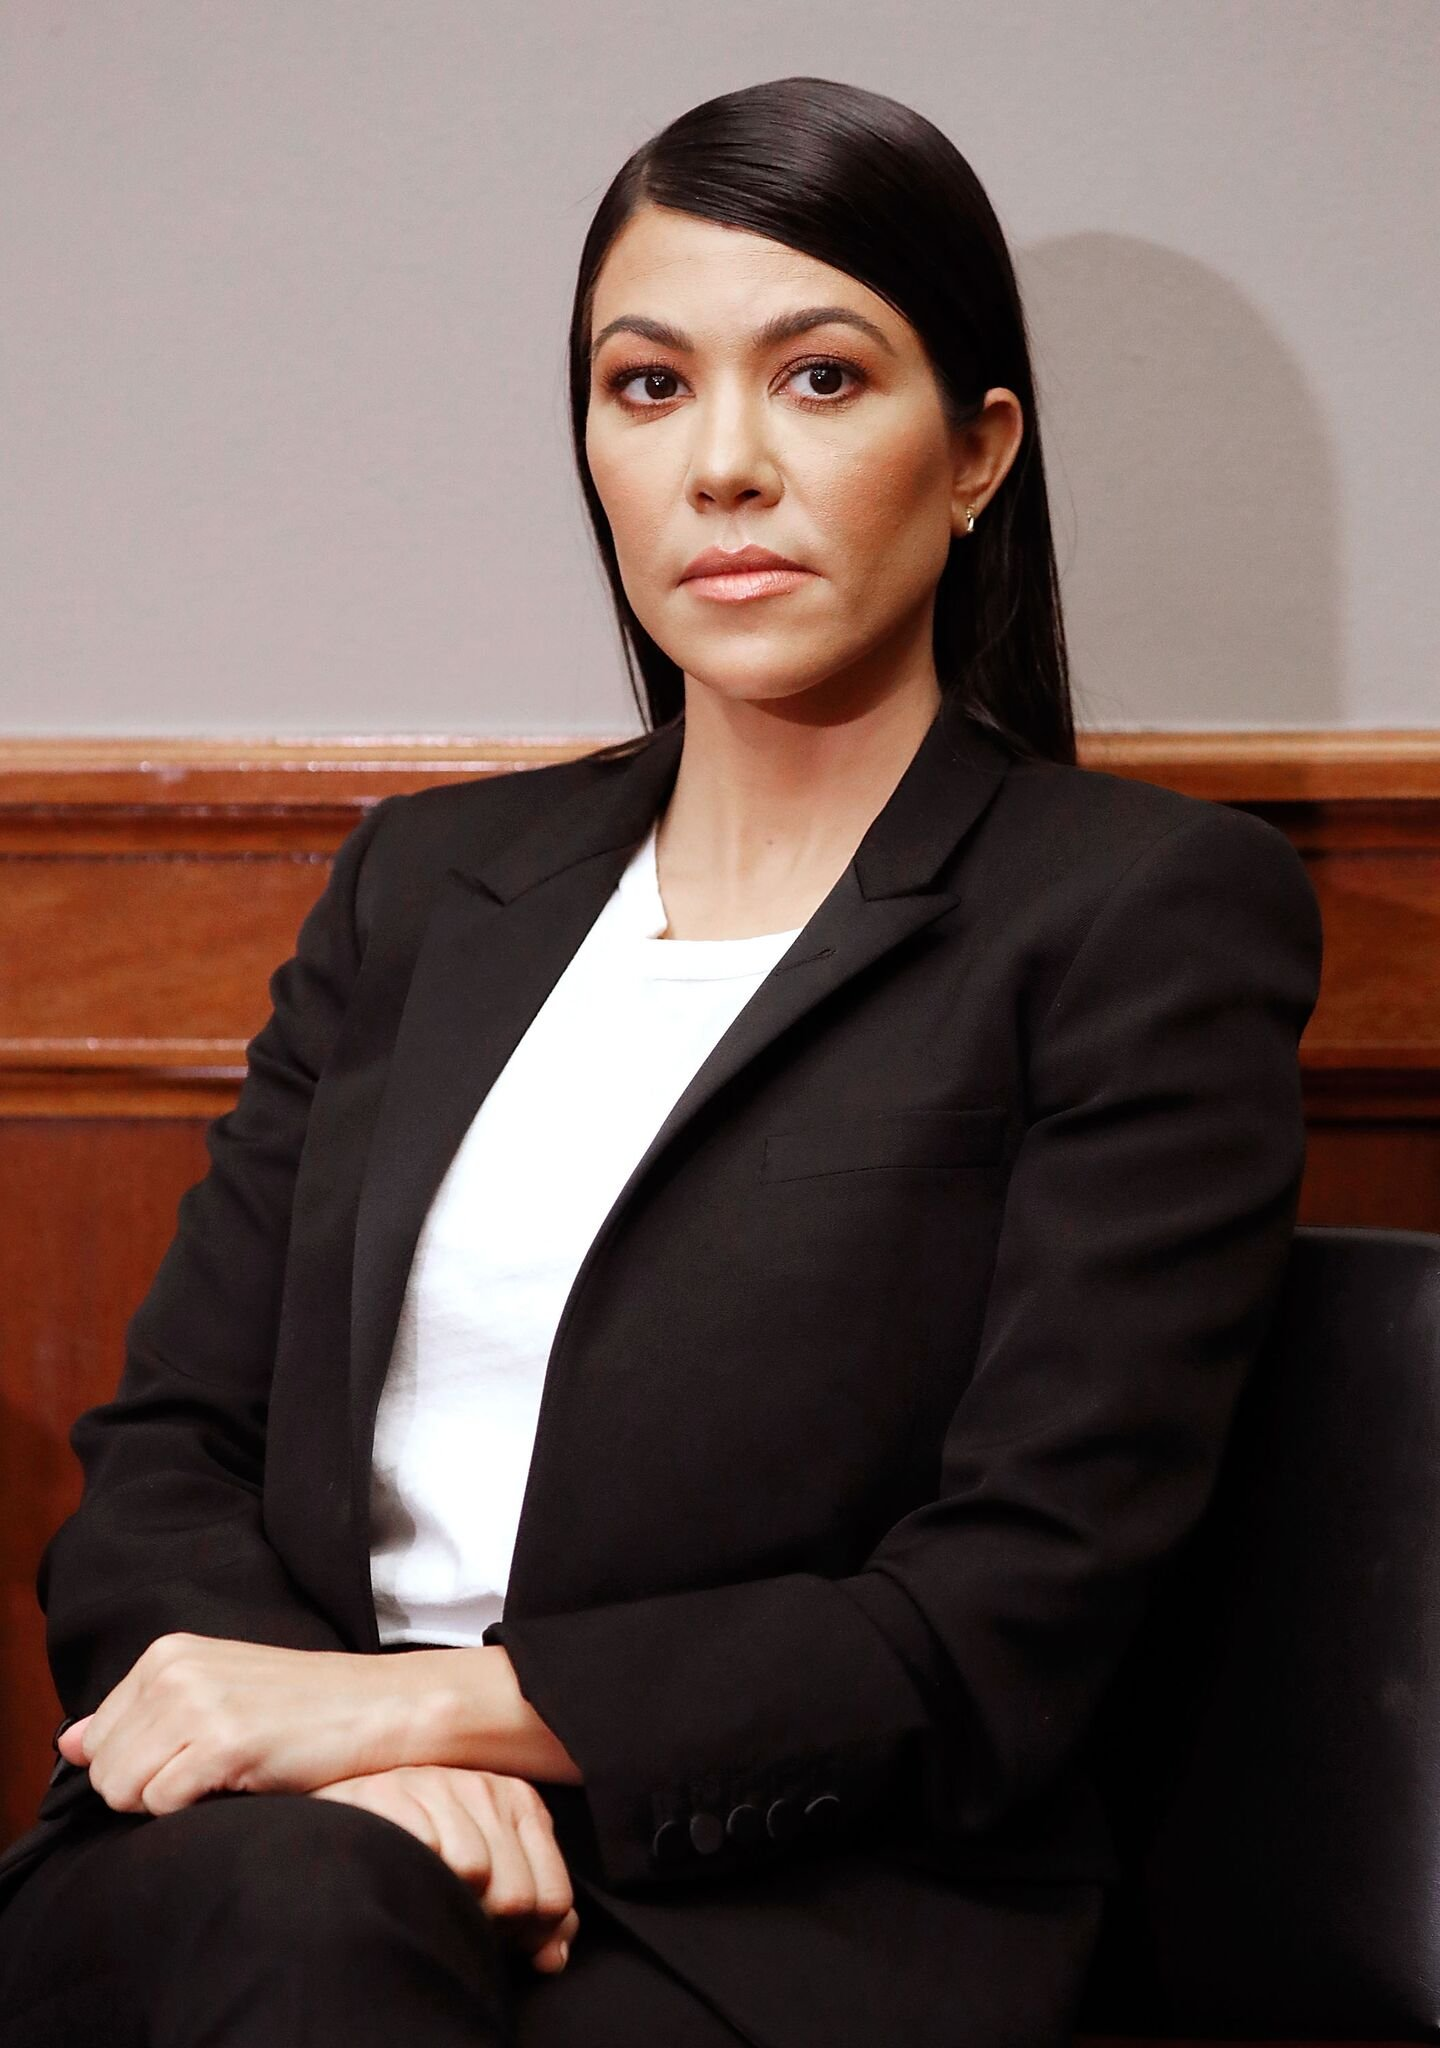 Kourtney Kardashian poses while sitting down | Getty Images